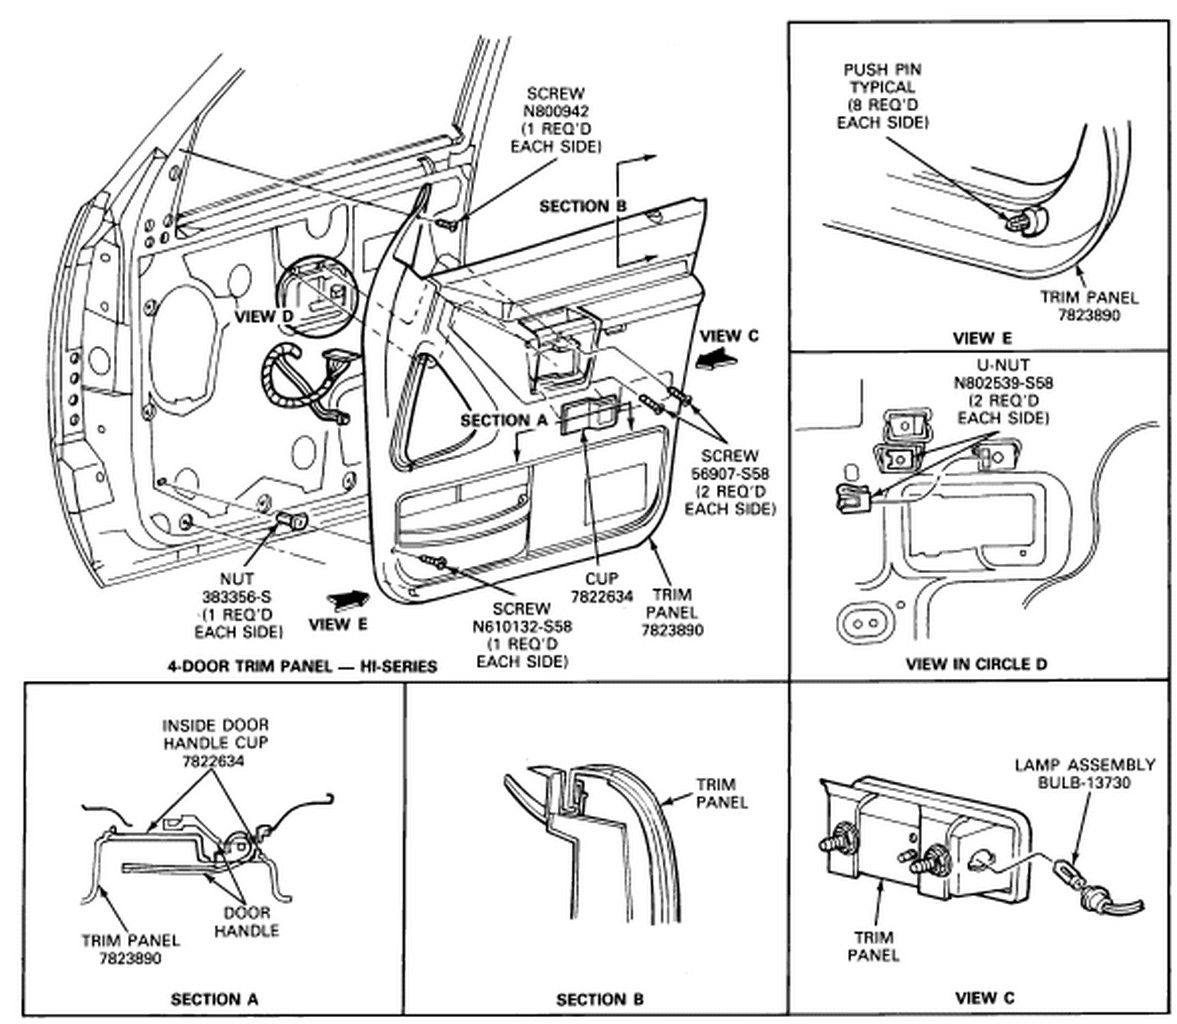 small resolution of ford fusion door diagram wiring diagram ford fusion door parts diagram ford fusion door diagram